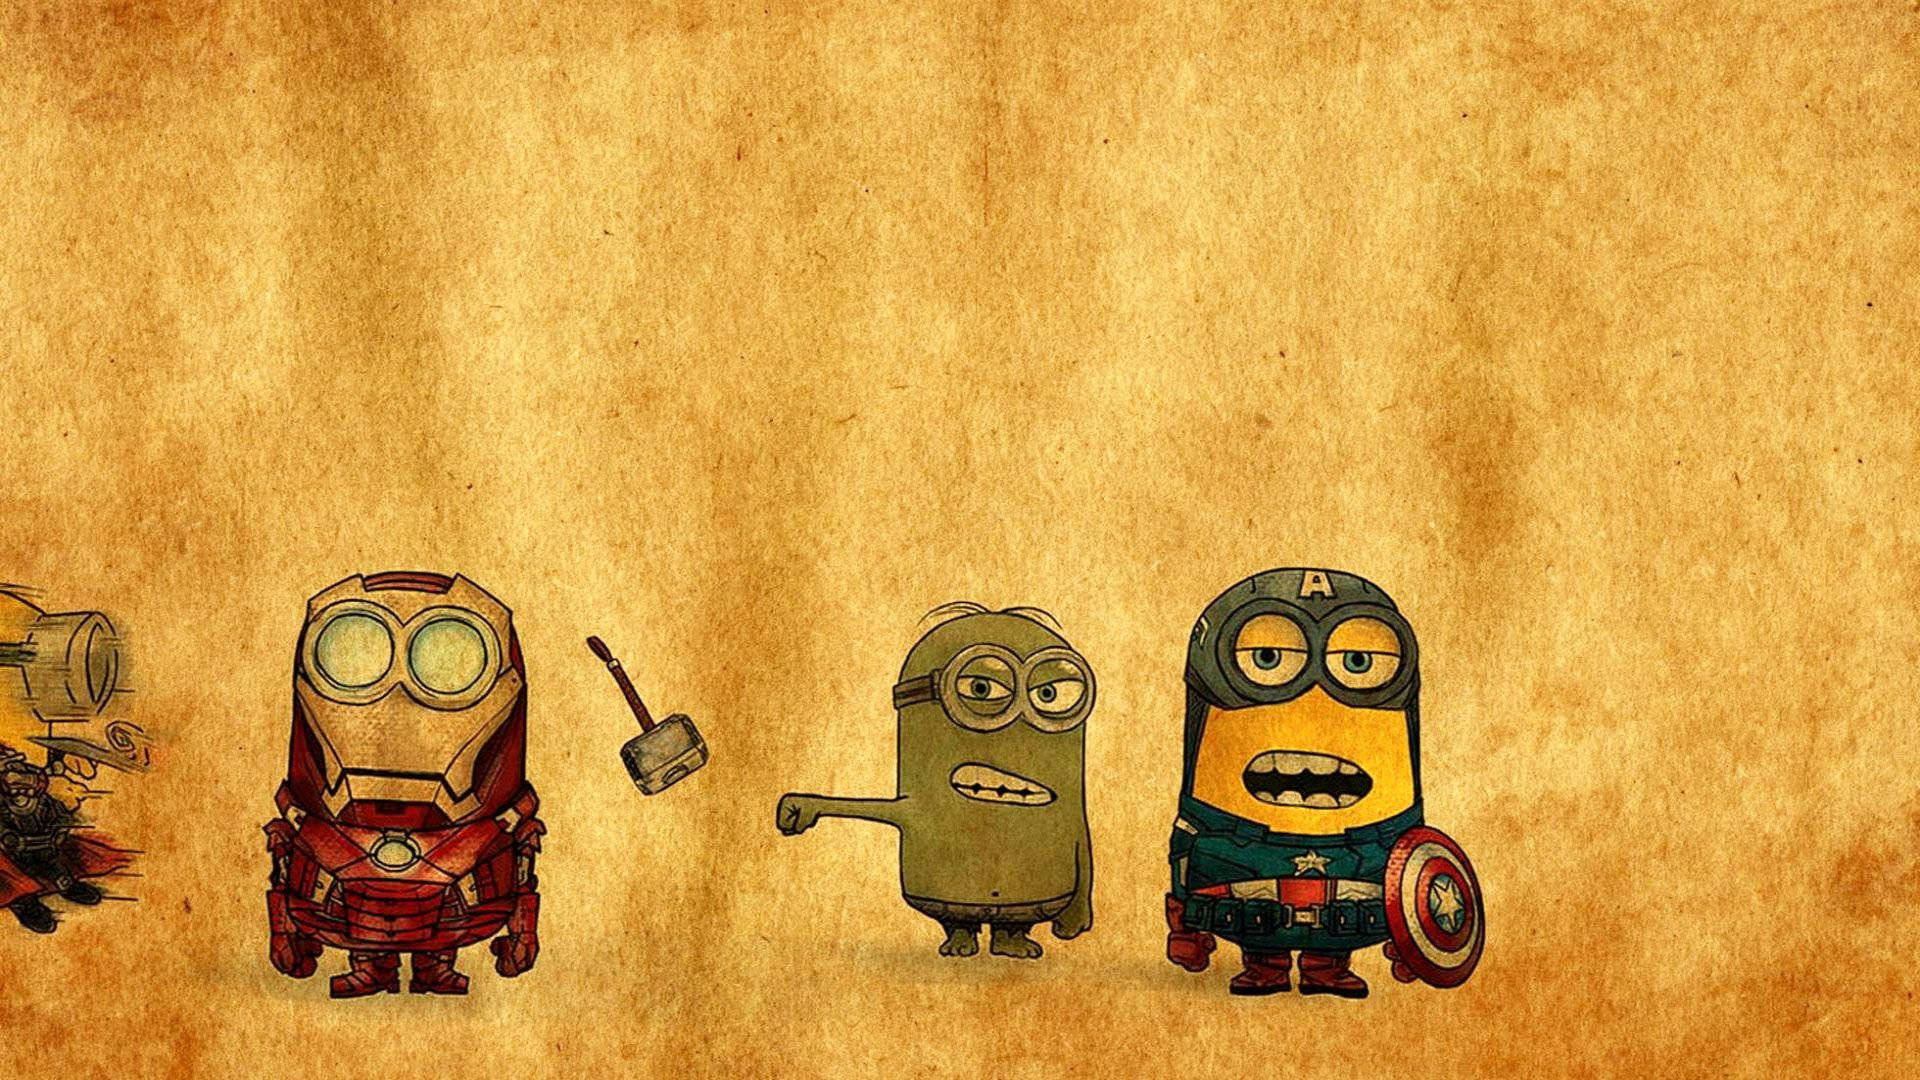 Funny Meme Wallpapers For Iphone : Minions avengers drawing exclusive hd wallpapers for desktop